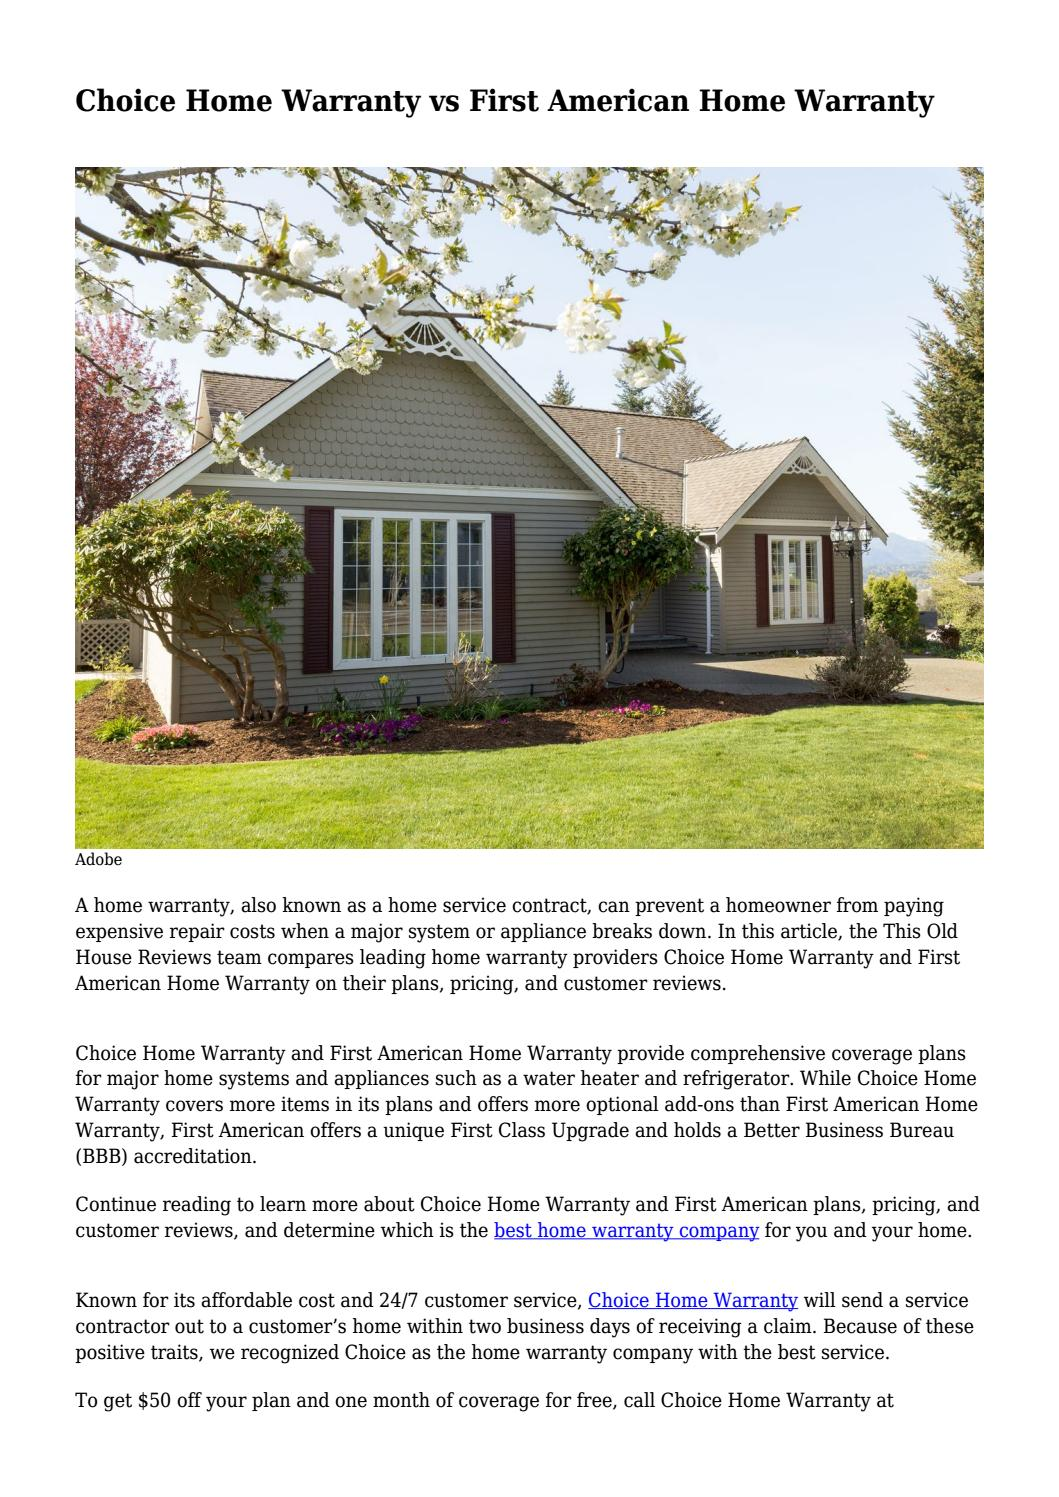 Choice Home Warranty Vs First American Home Warranty By Achwithed Issuu